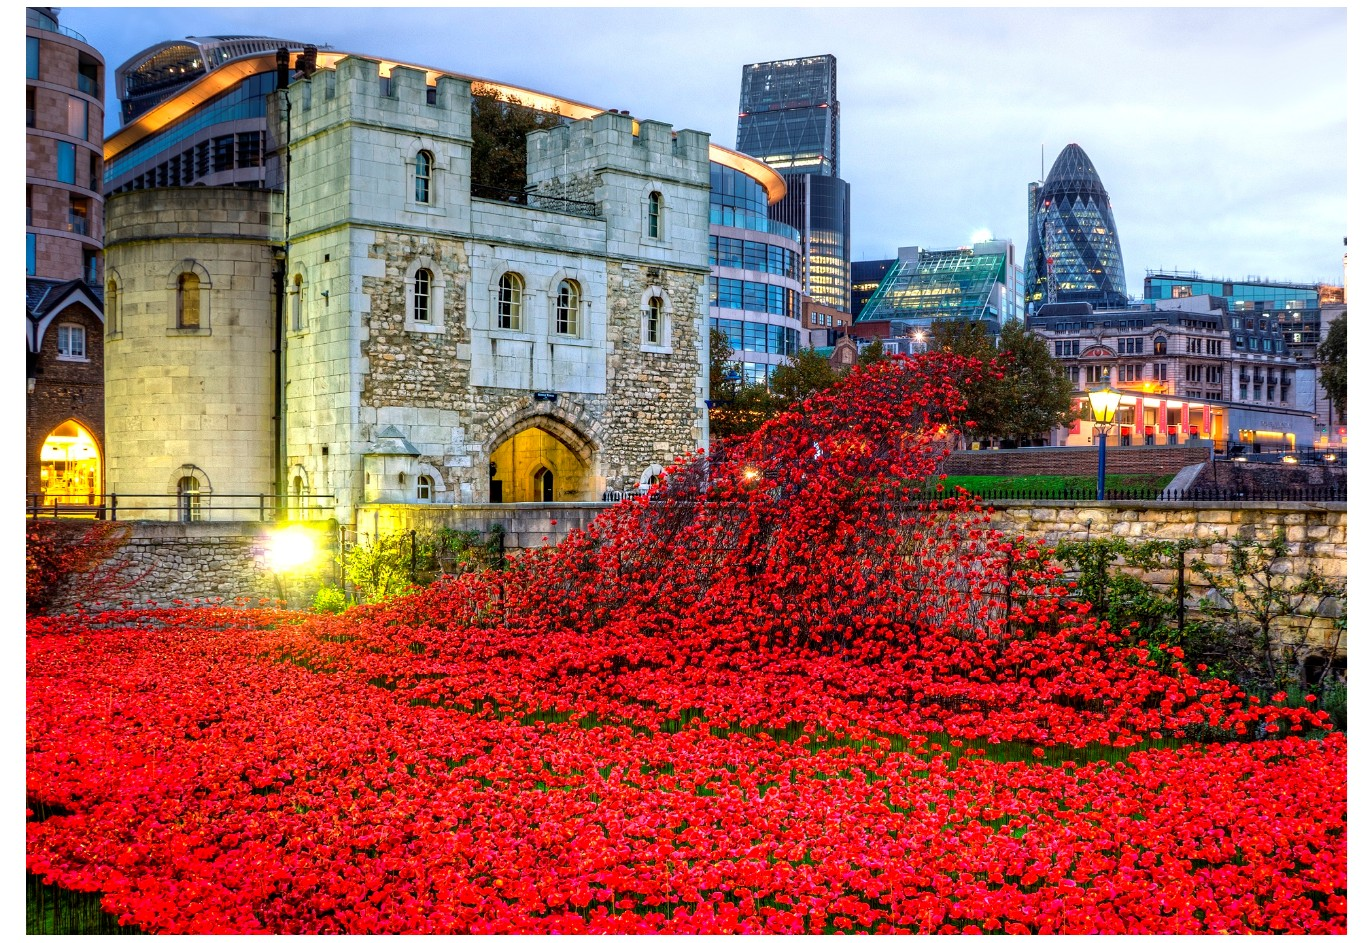 wentworth-holzpuzzle-tower-of-london-remembrance-250-teile-puzzle-wentworth-693605